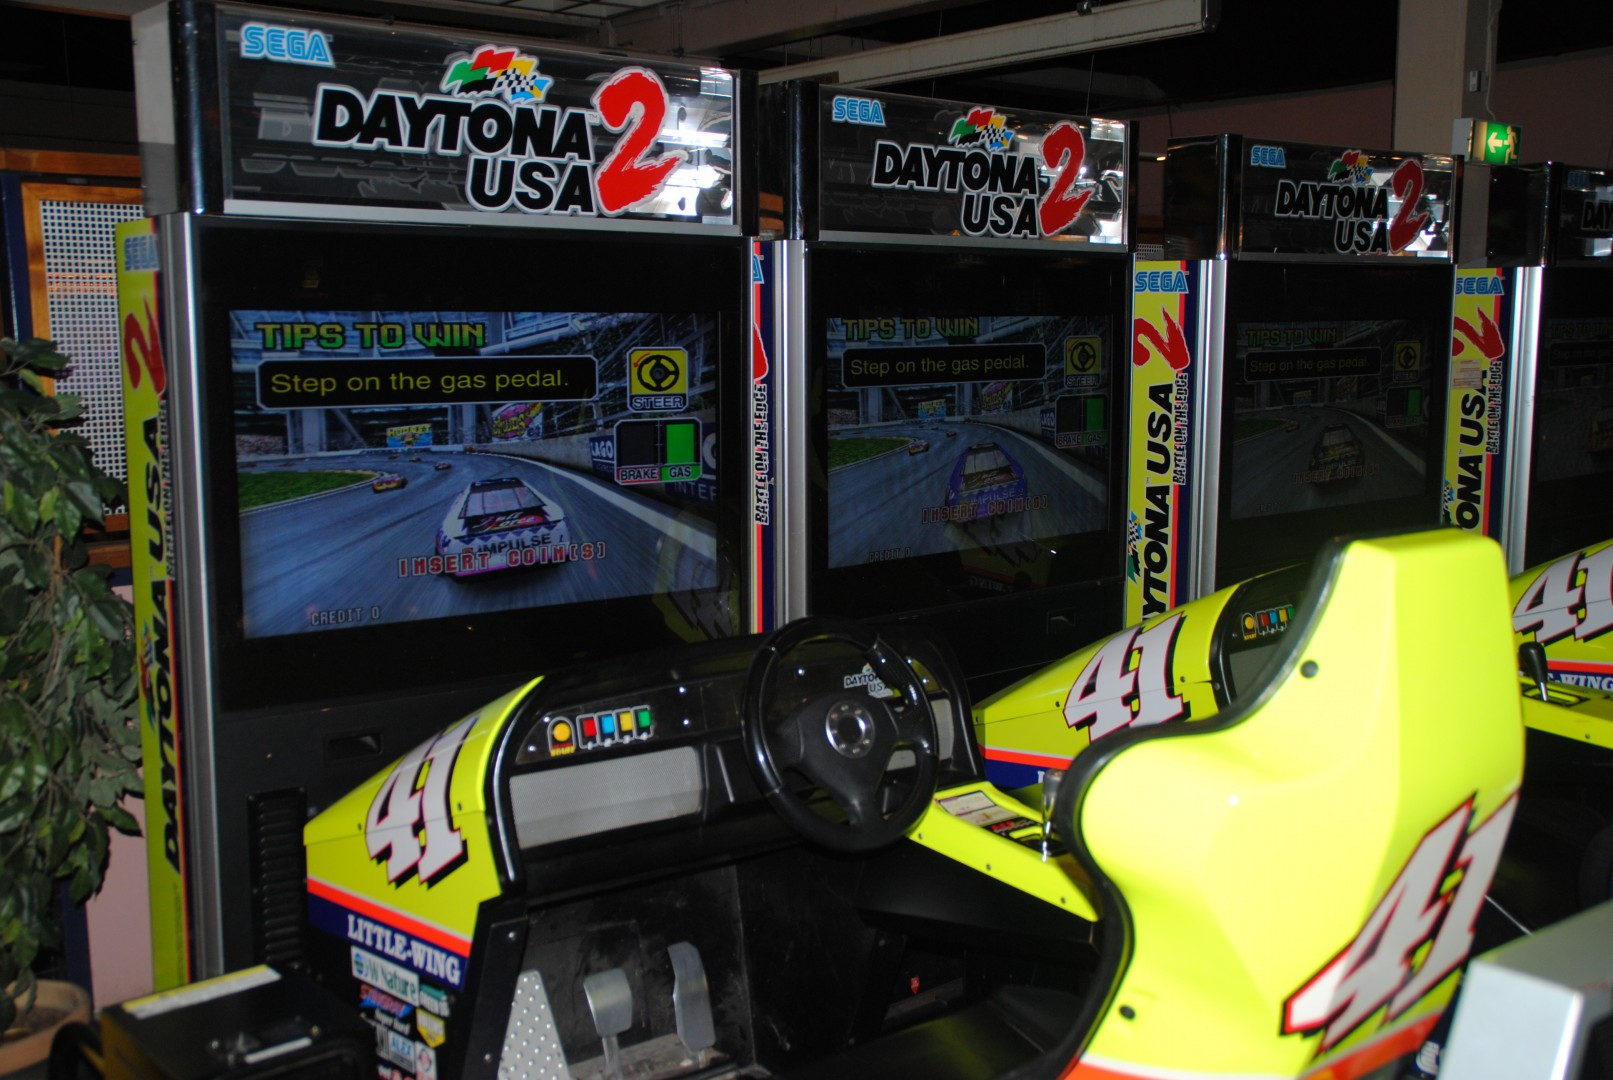 Daytona USA 2 / At Liseberg Fun Fair